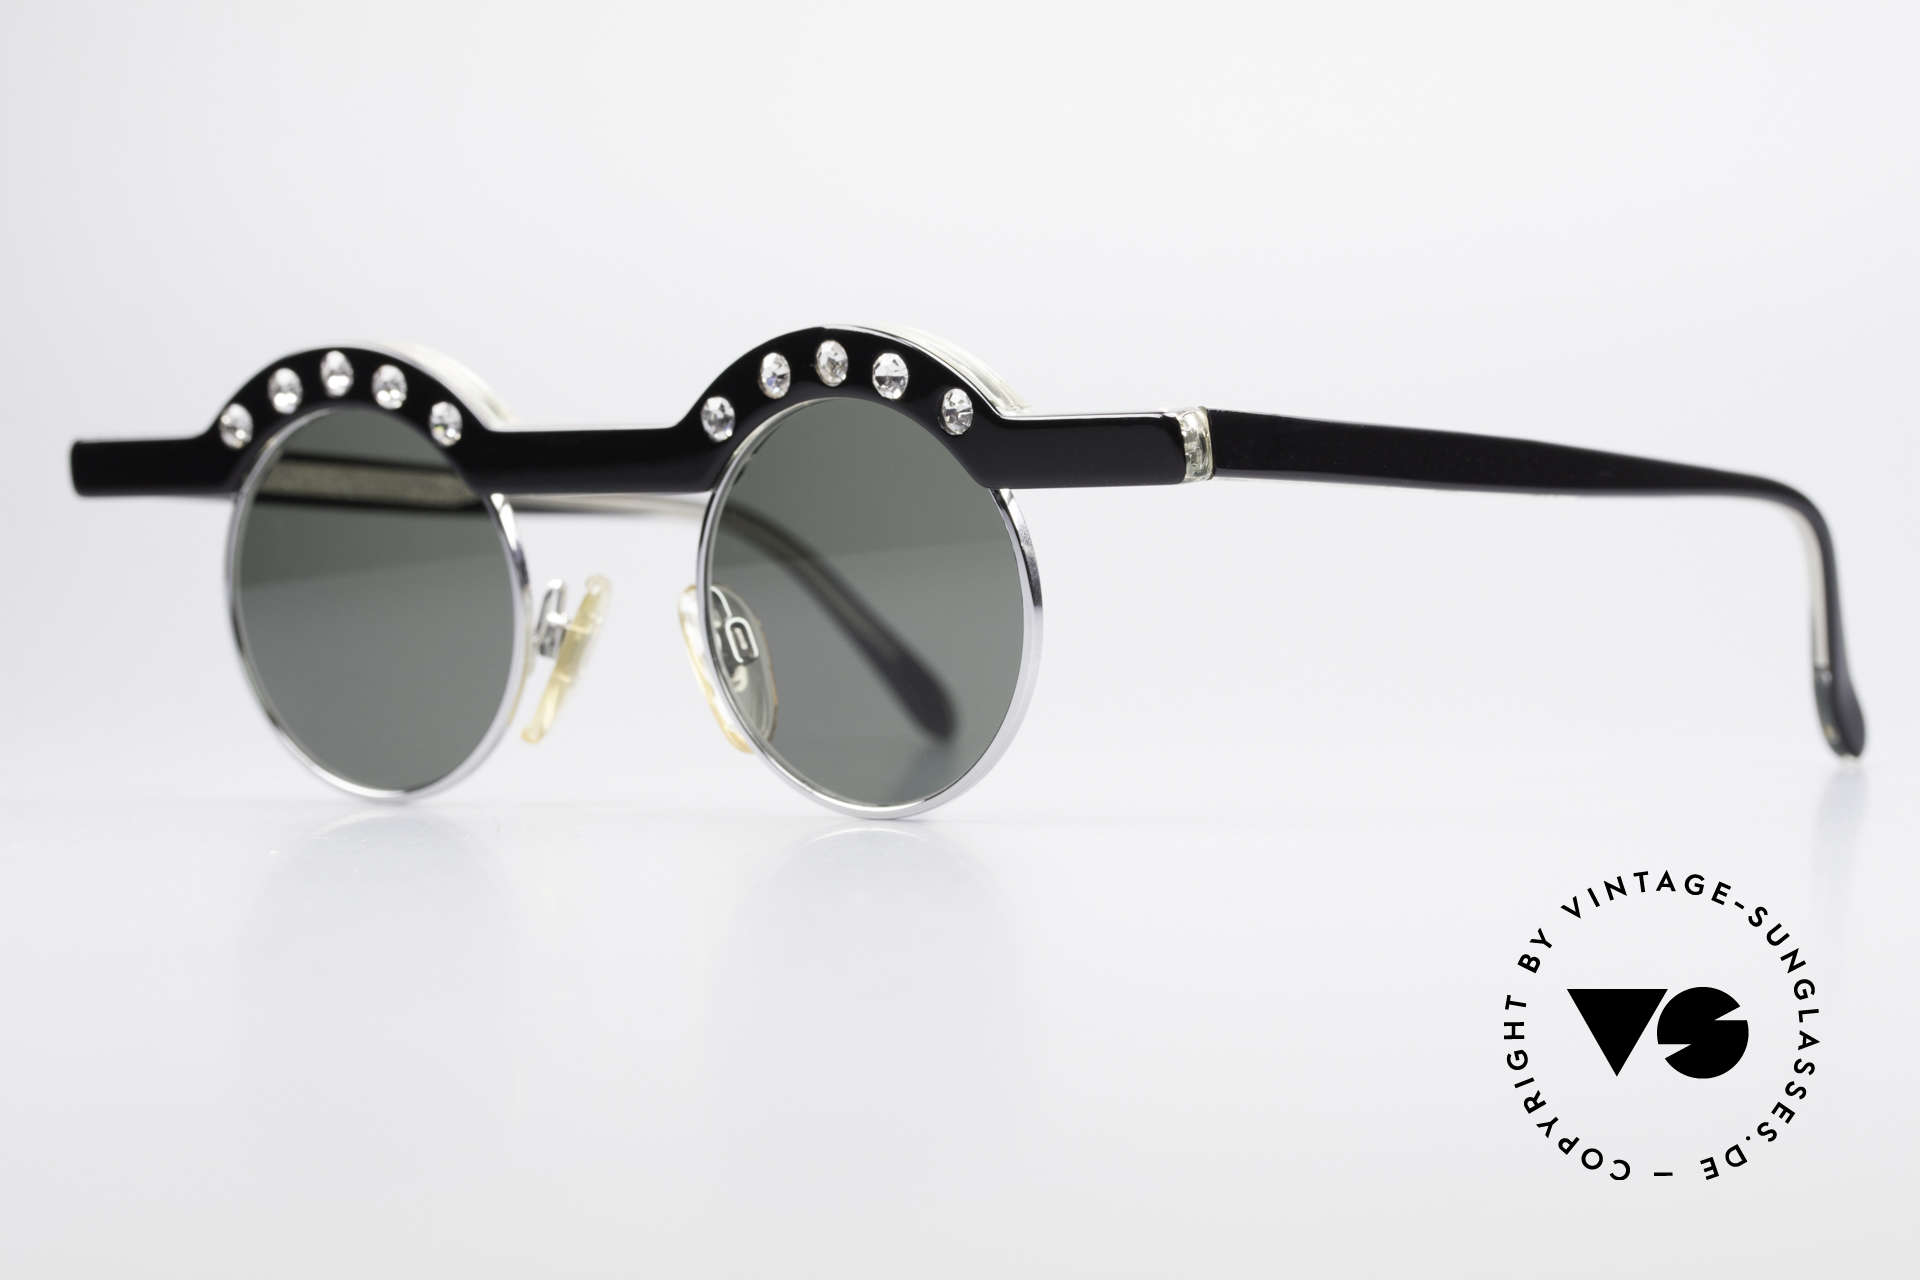 Theo Belgium Revoir Rare Round Gem Sunglasses, made for the avant-garde, individualists, trend-setters, Made for Women